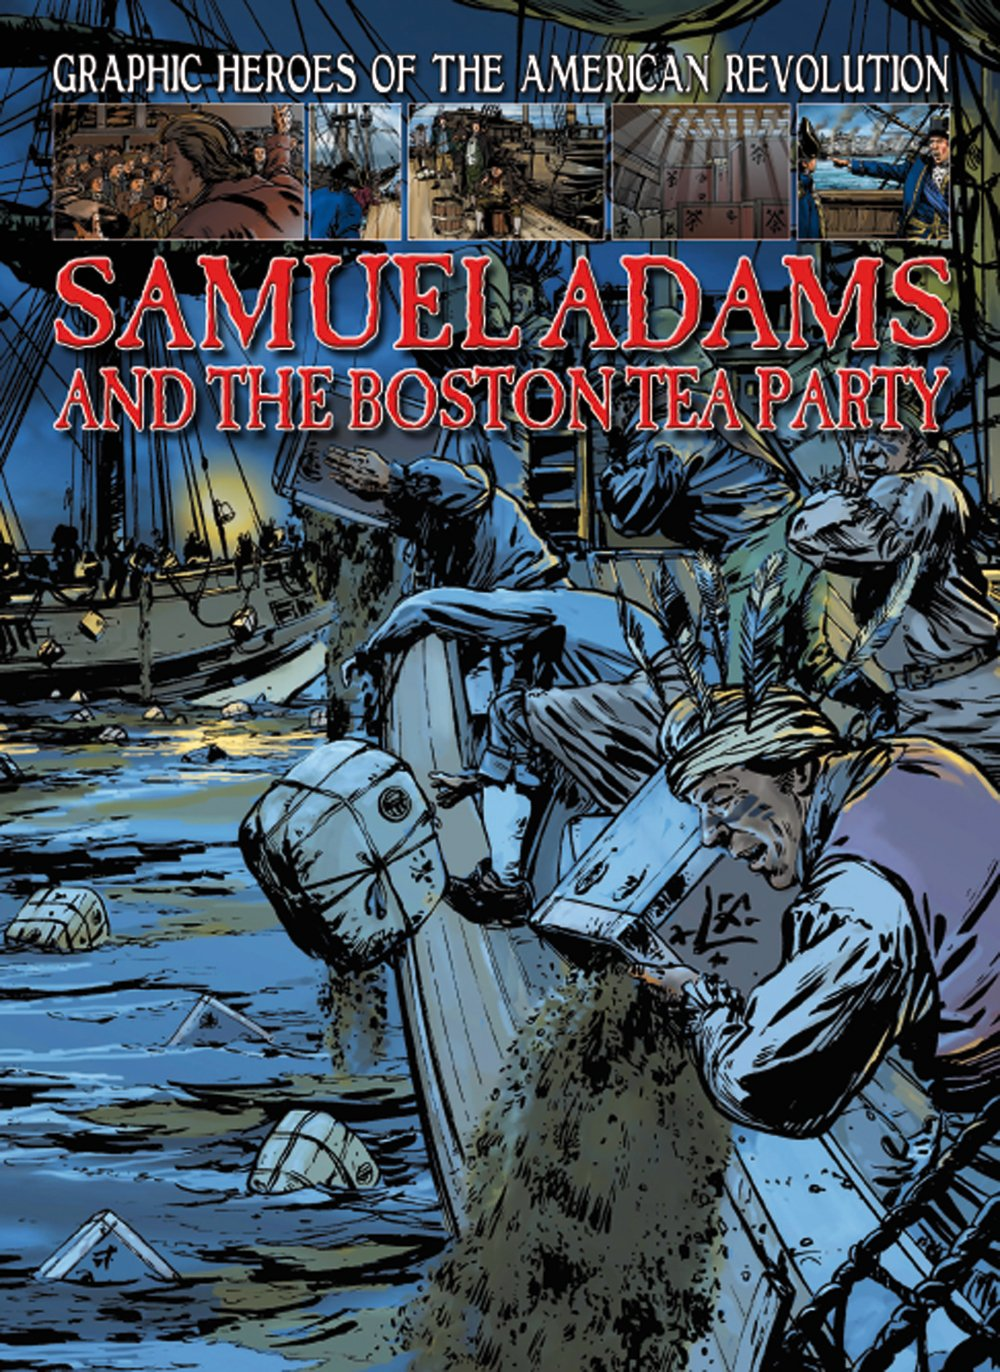 Samuel Adams and the Boston Tea Party (Graphic Heroes of the American Revolution)